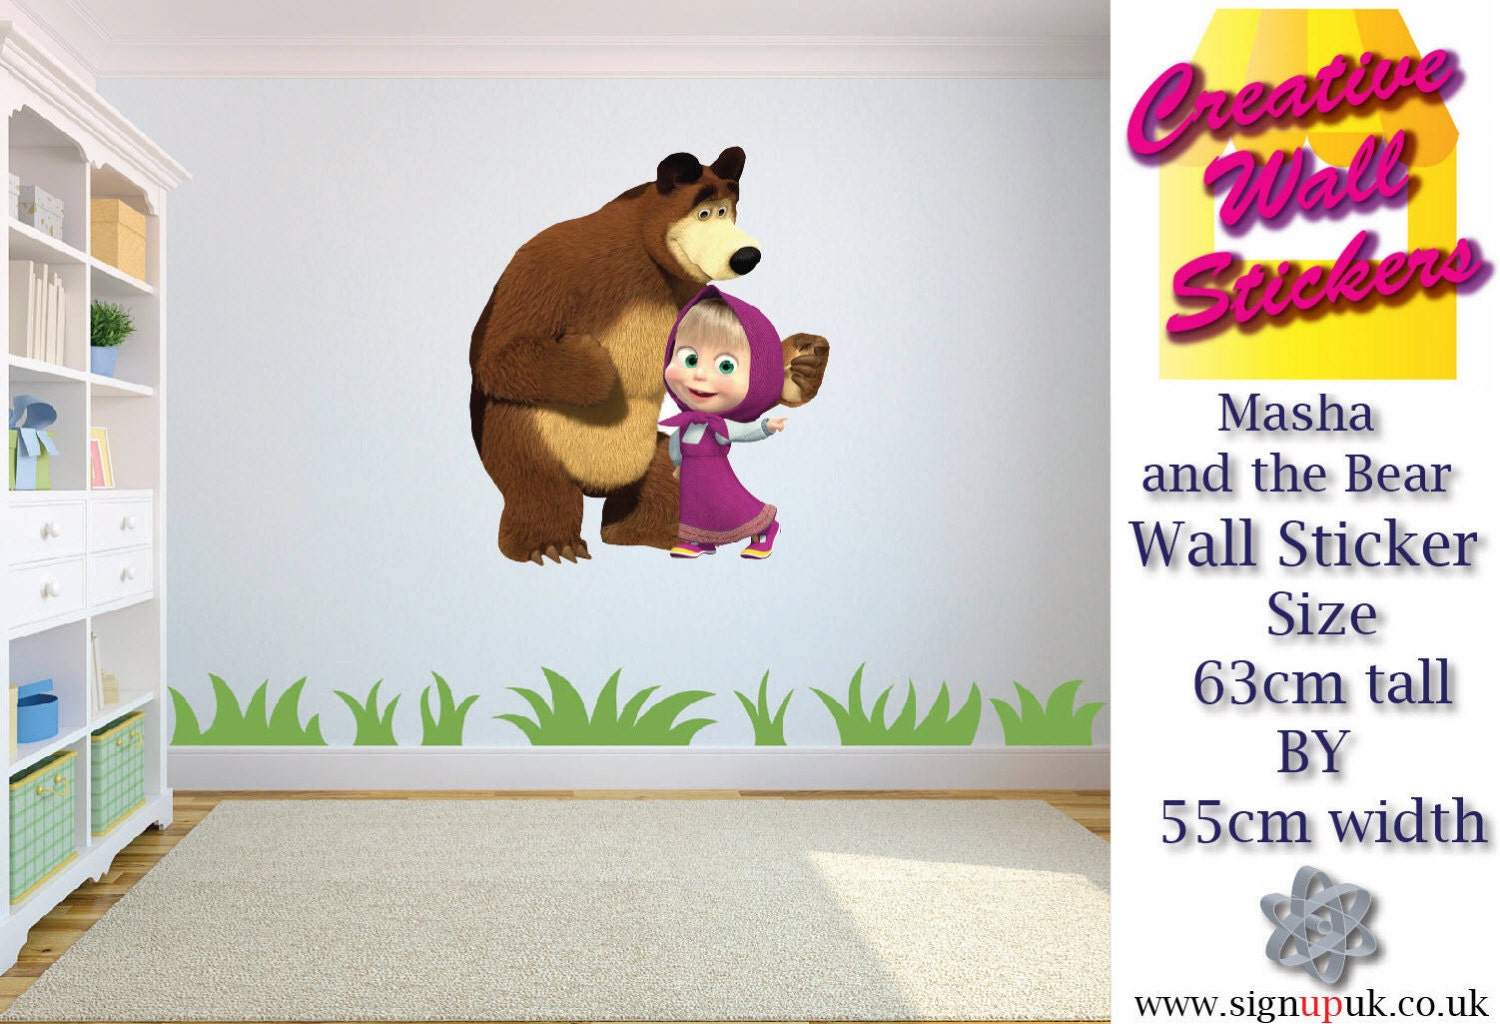 Masha and the bear wall sticker childrens bedroom wall decal description masha and the bear wall sticker amipublicfo Gallery